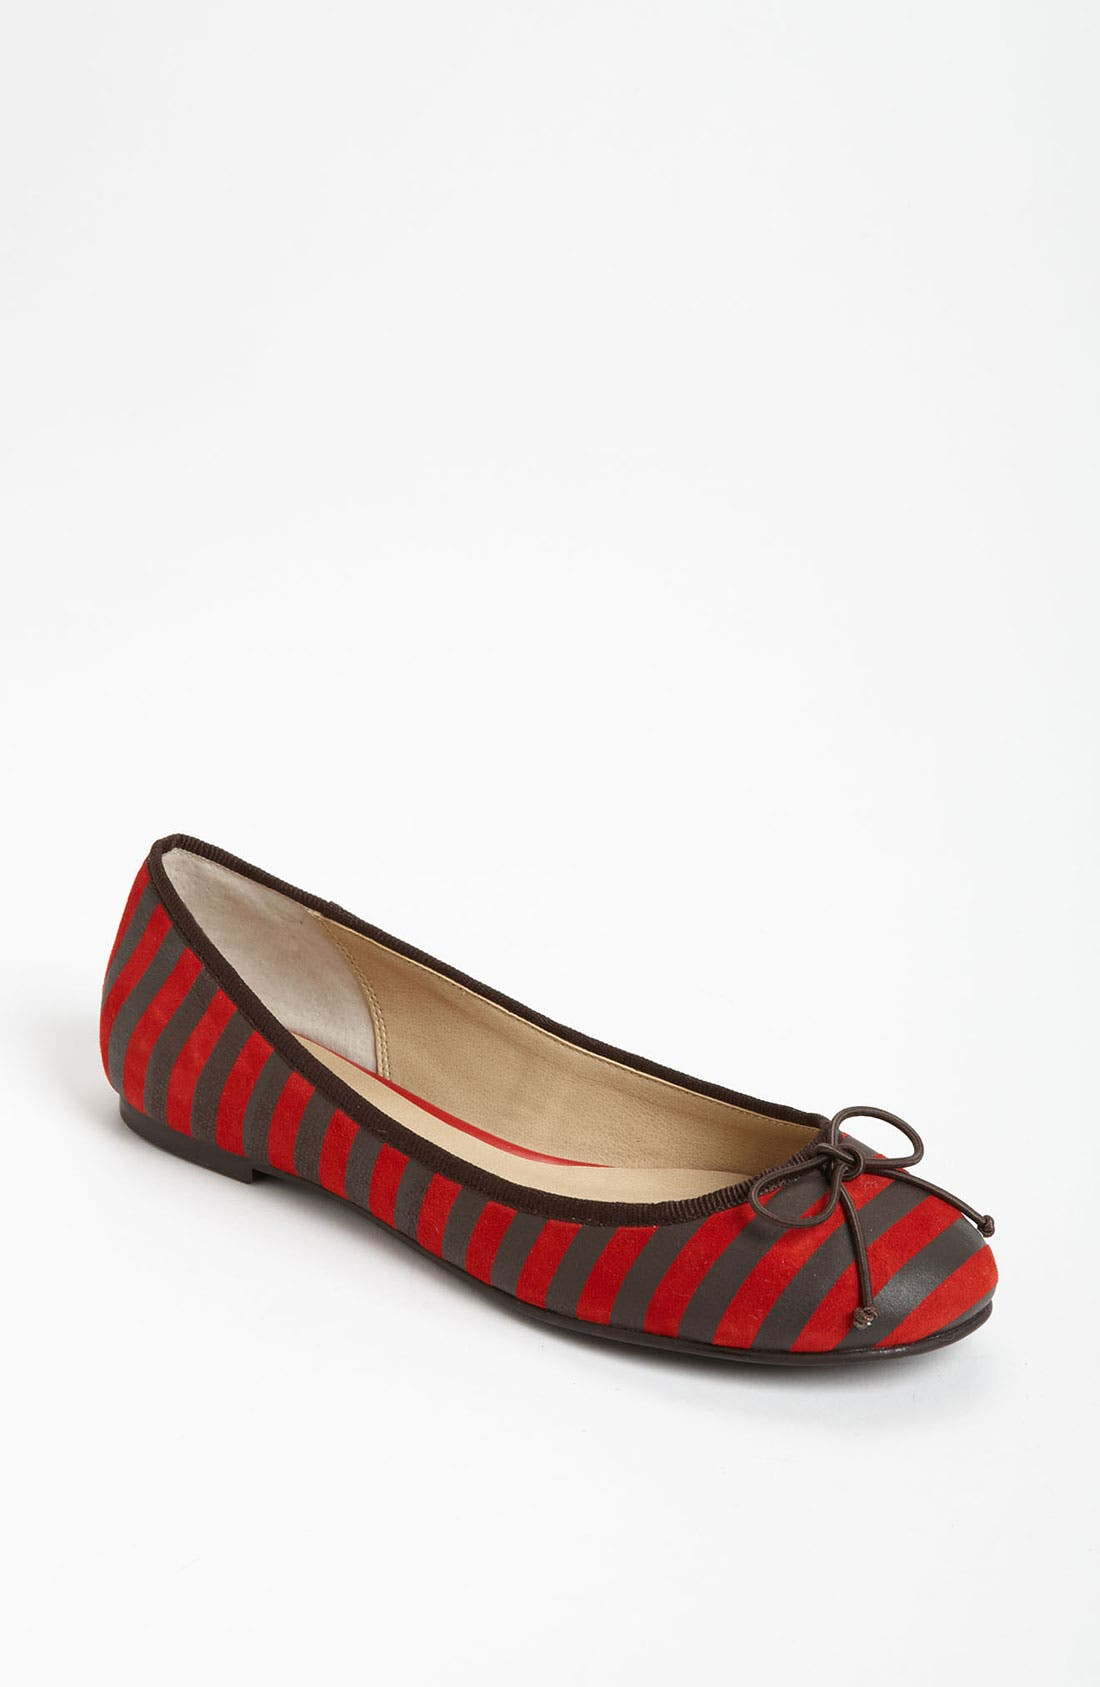 Alternate Image 1 Selected - BP. 'Ana' Ballet Flat